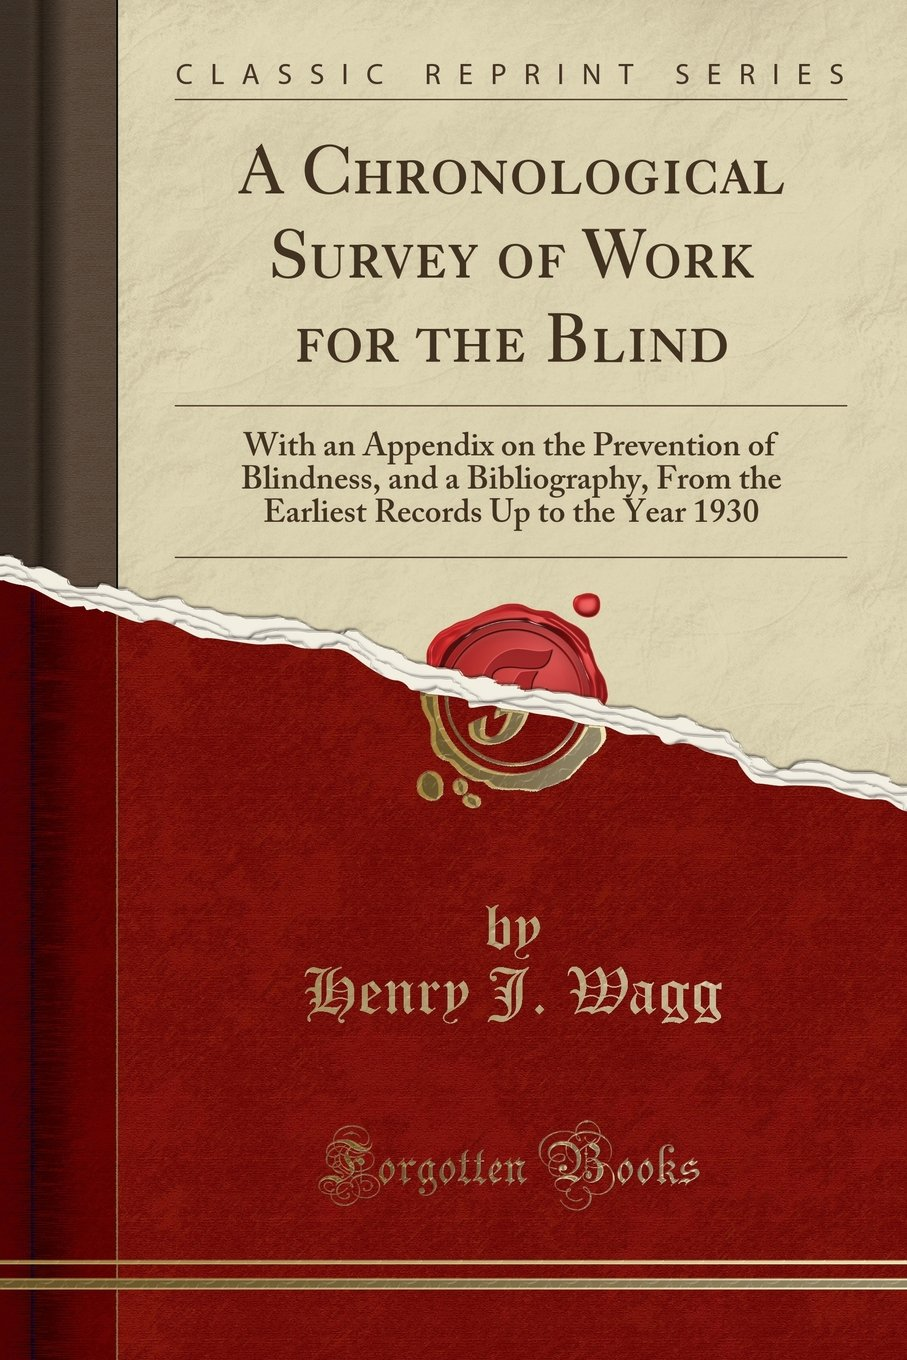 a chronological survey of work for the blind with an appendix on the prevention of blindness and a bibliography from the earliest records up to the year